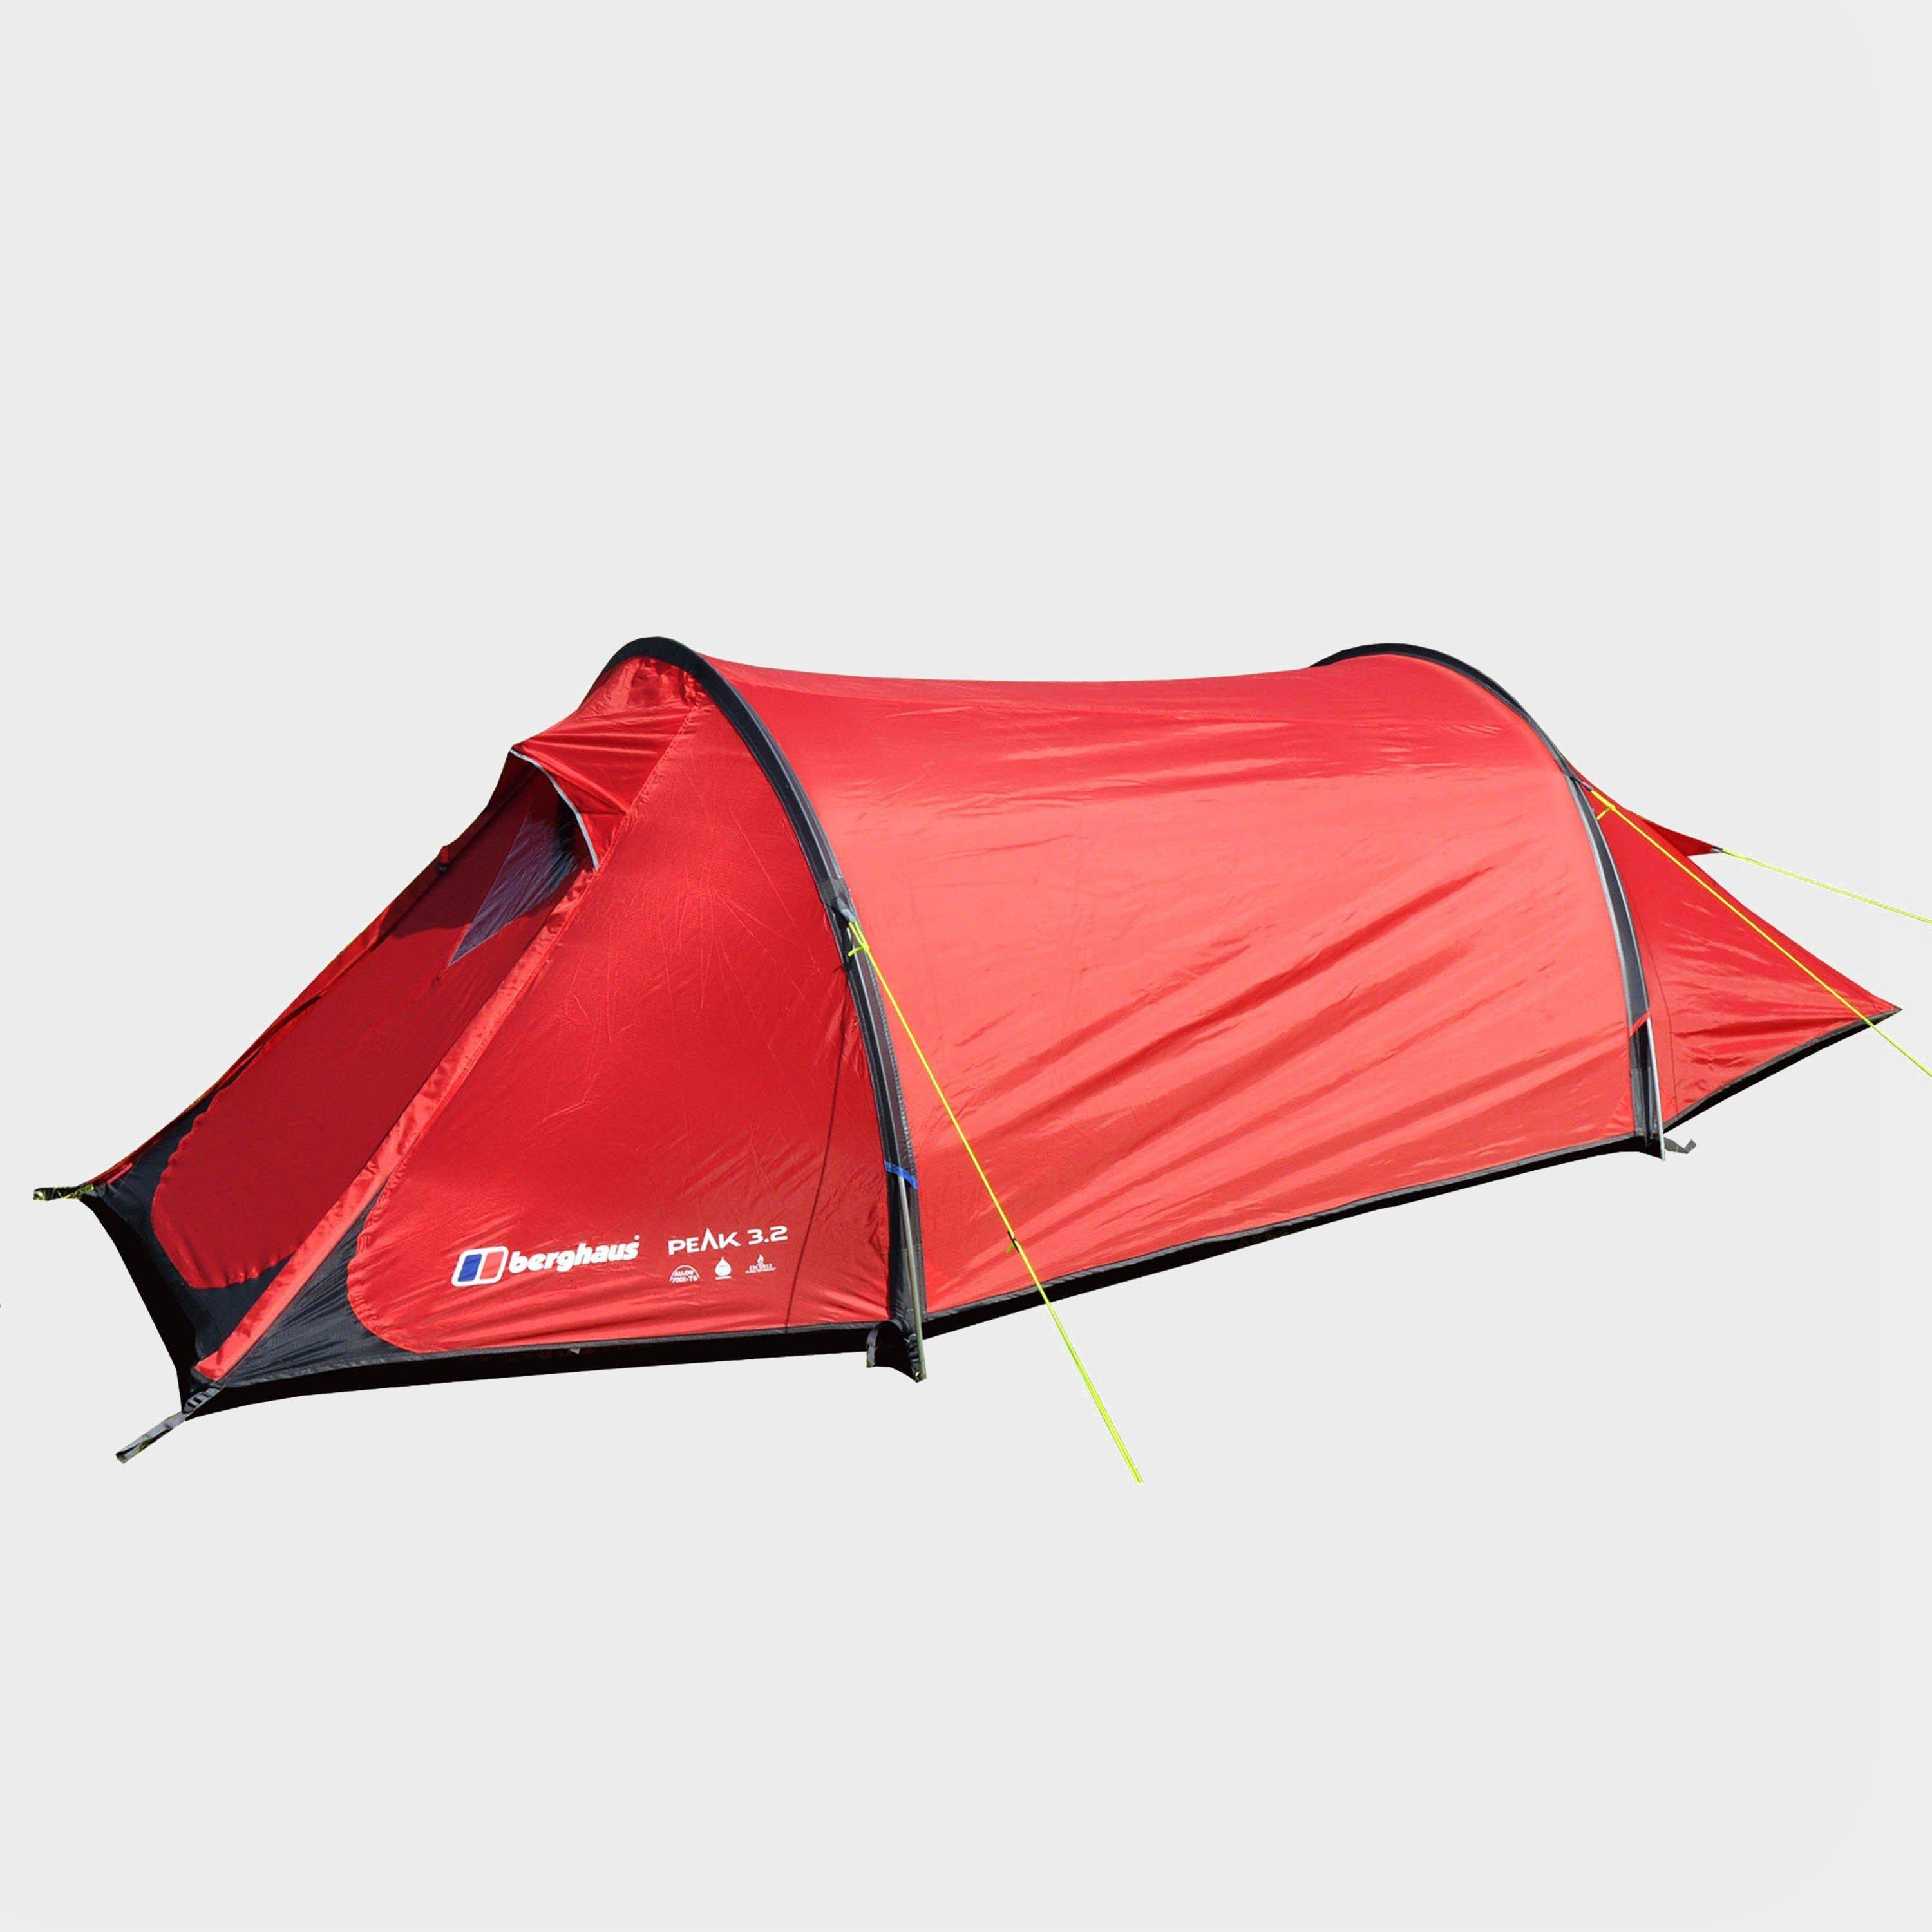 BERGHAUS Peak 3.2 2 Man Tent  sc 1 st  Blacks & 2 Person Tents | Blacks